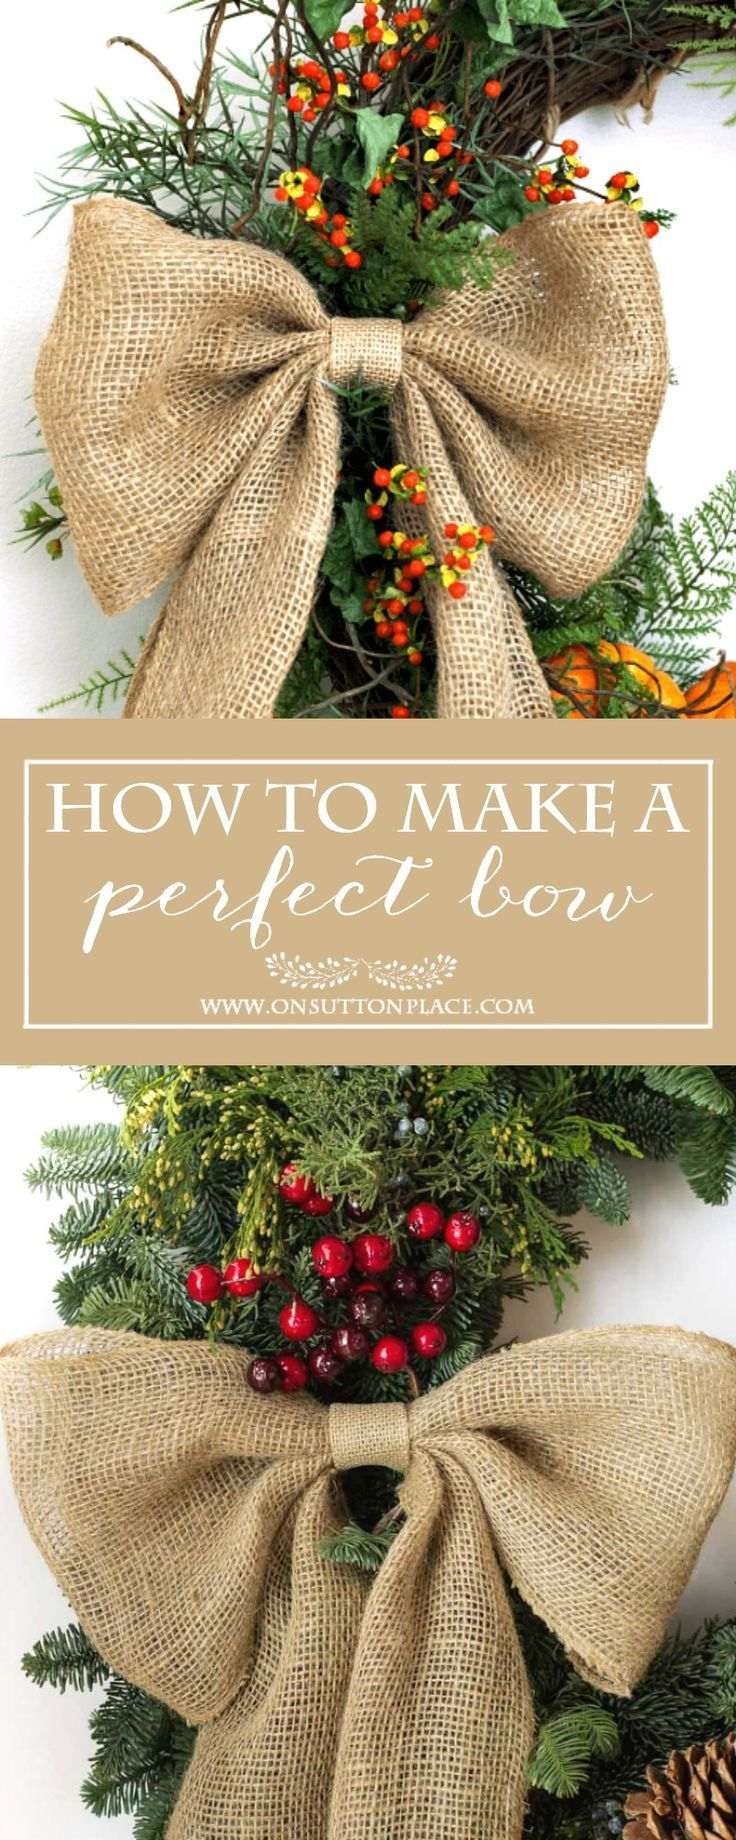 How to Make a Perfect Burlap Bow | Easy tutorial to make a perfect bow every time. Wreath Bow, Burlap Bow, Bow Tutorial, How to make a bow.